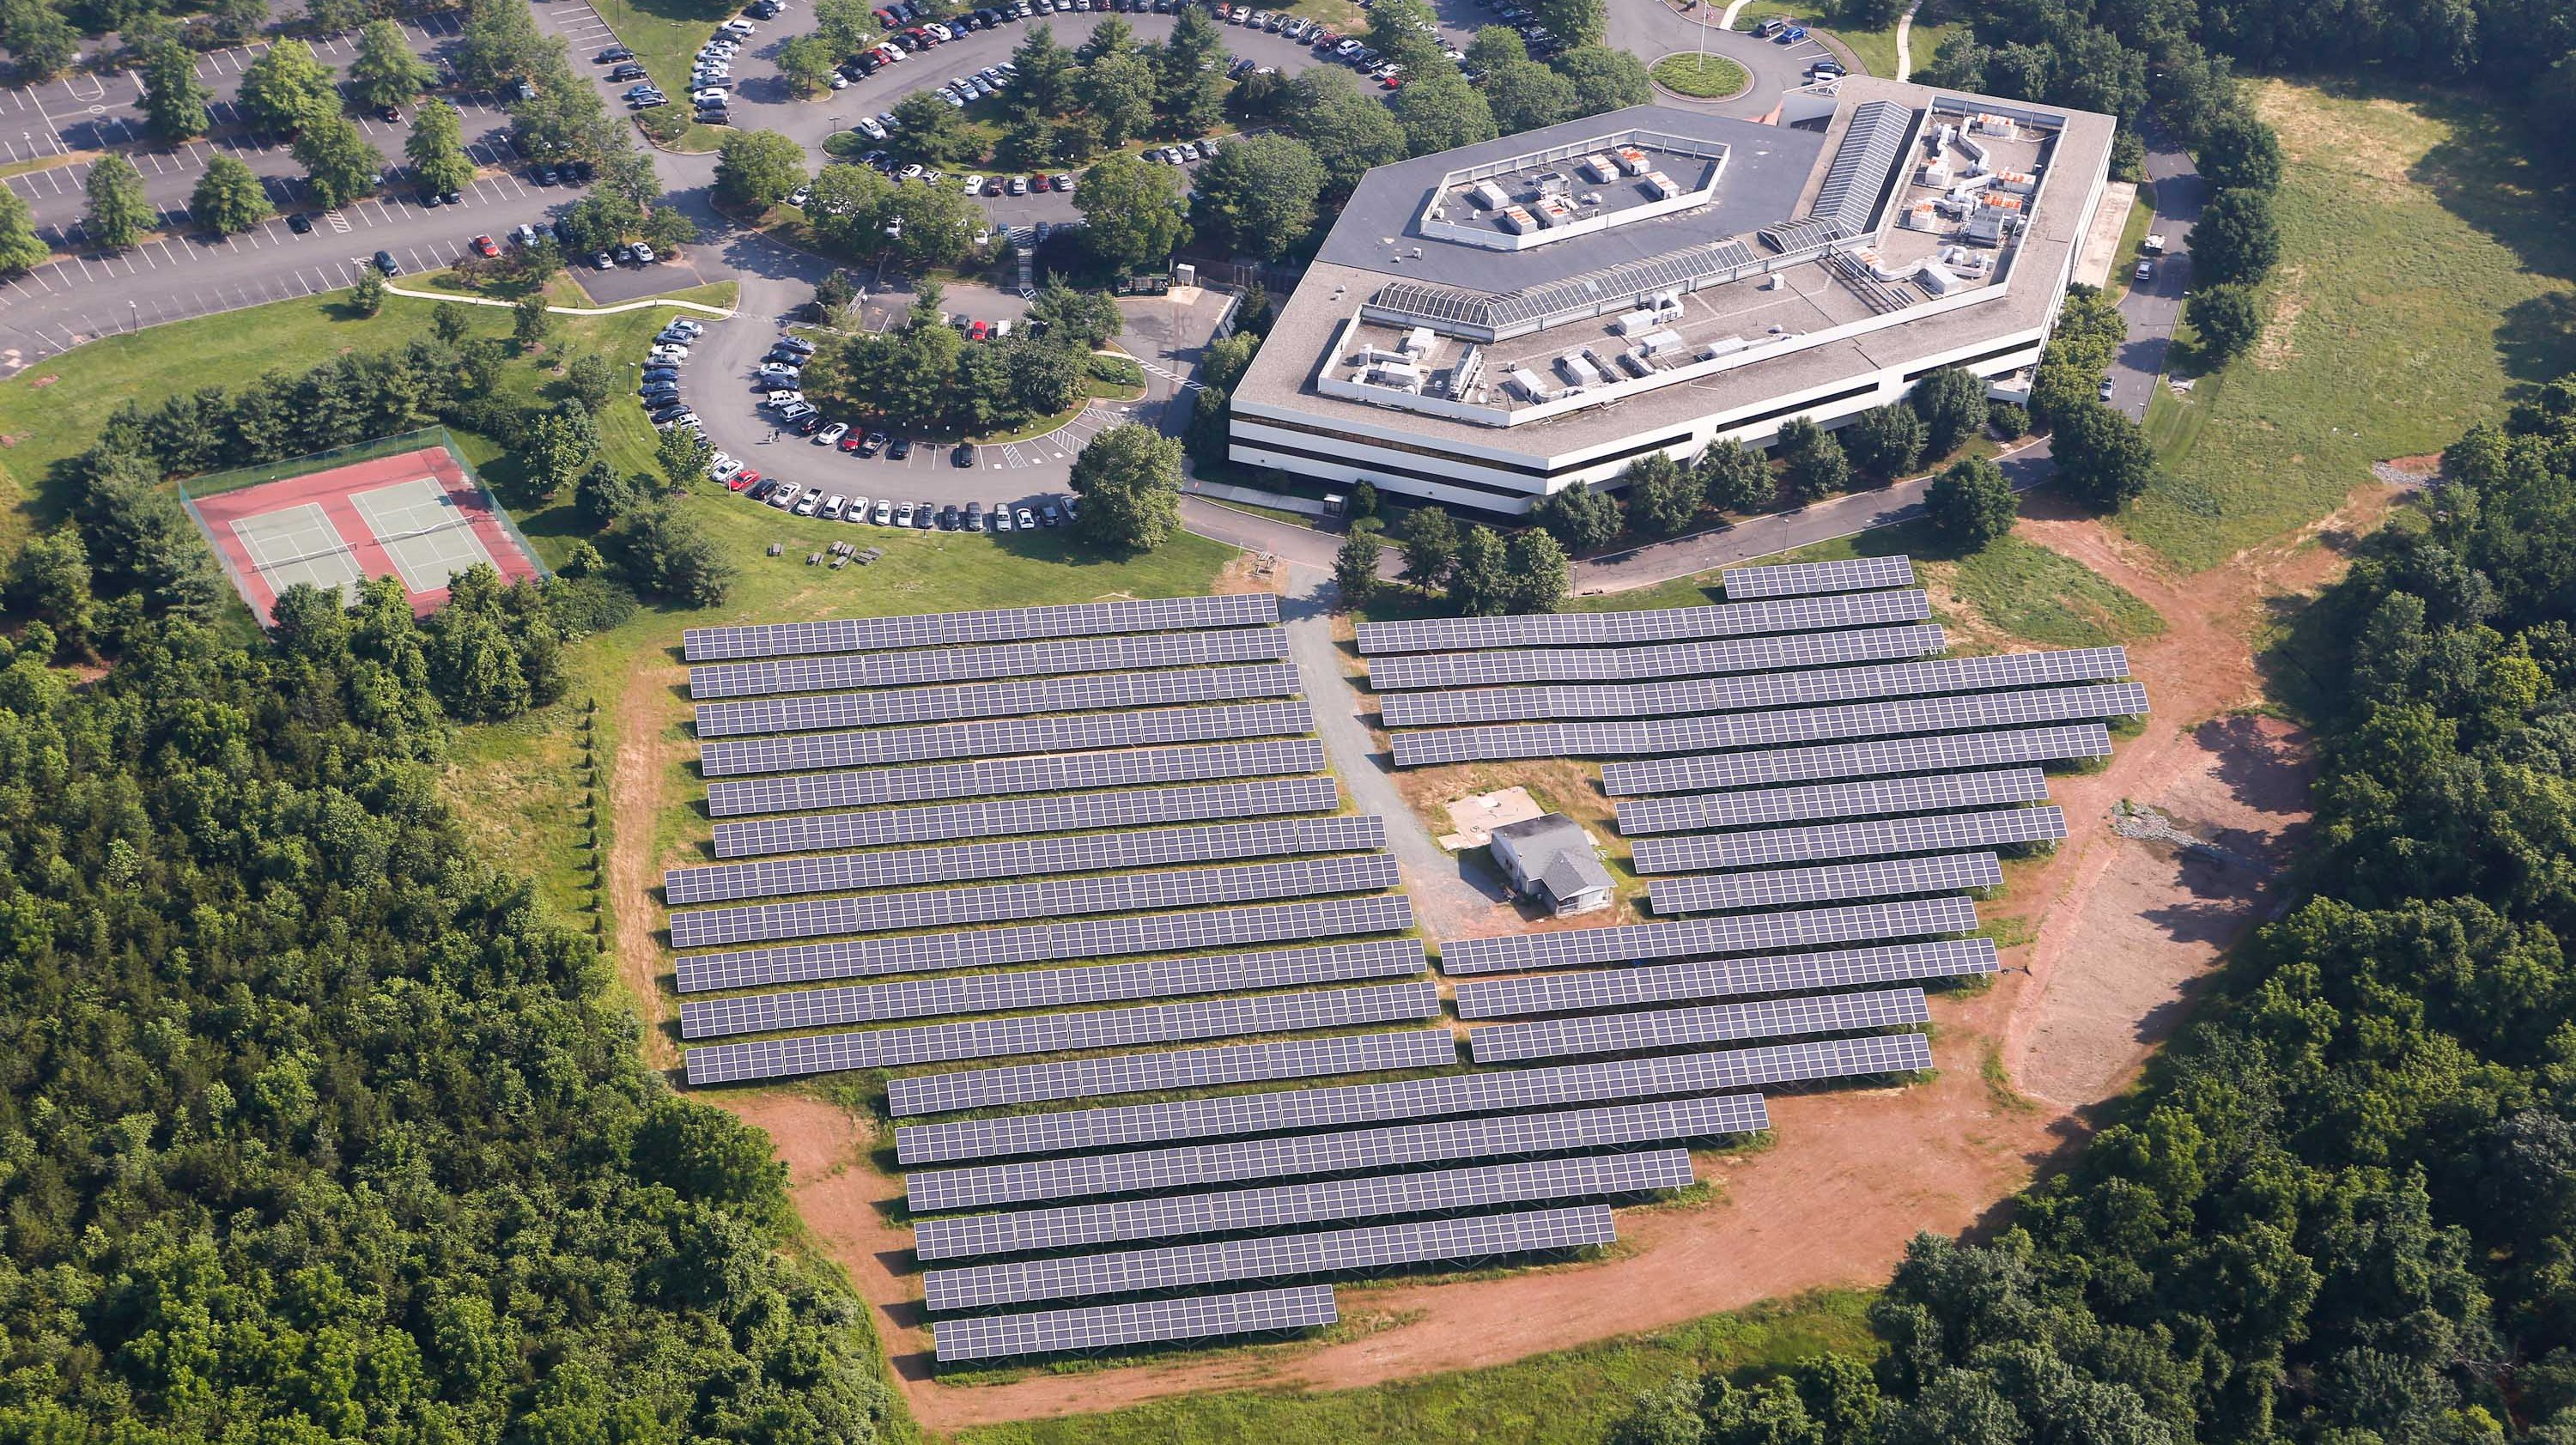 Ground mounted solar installation maximizes available land space